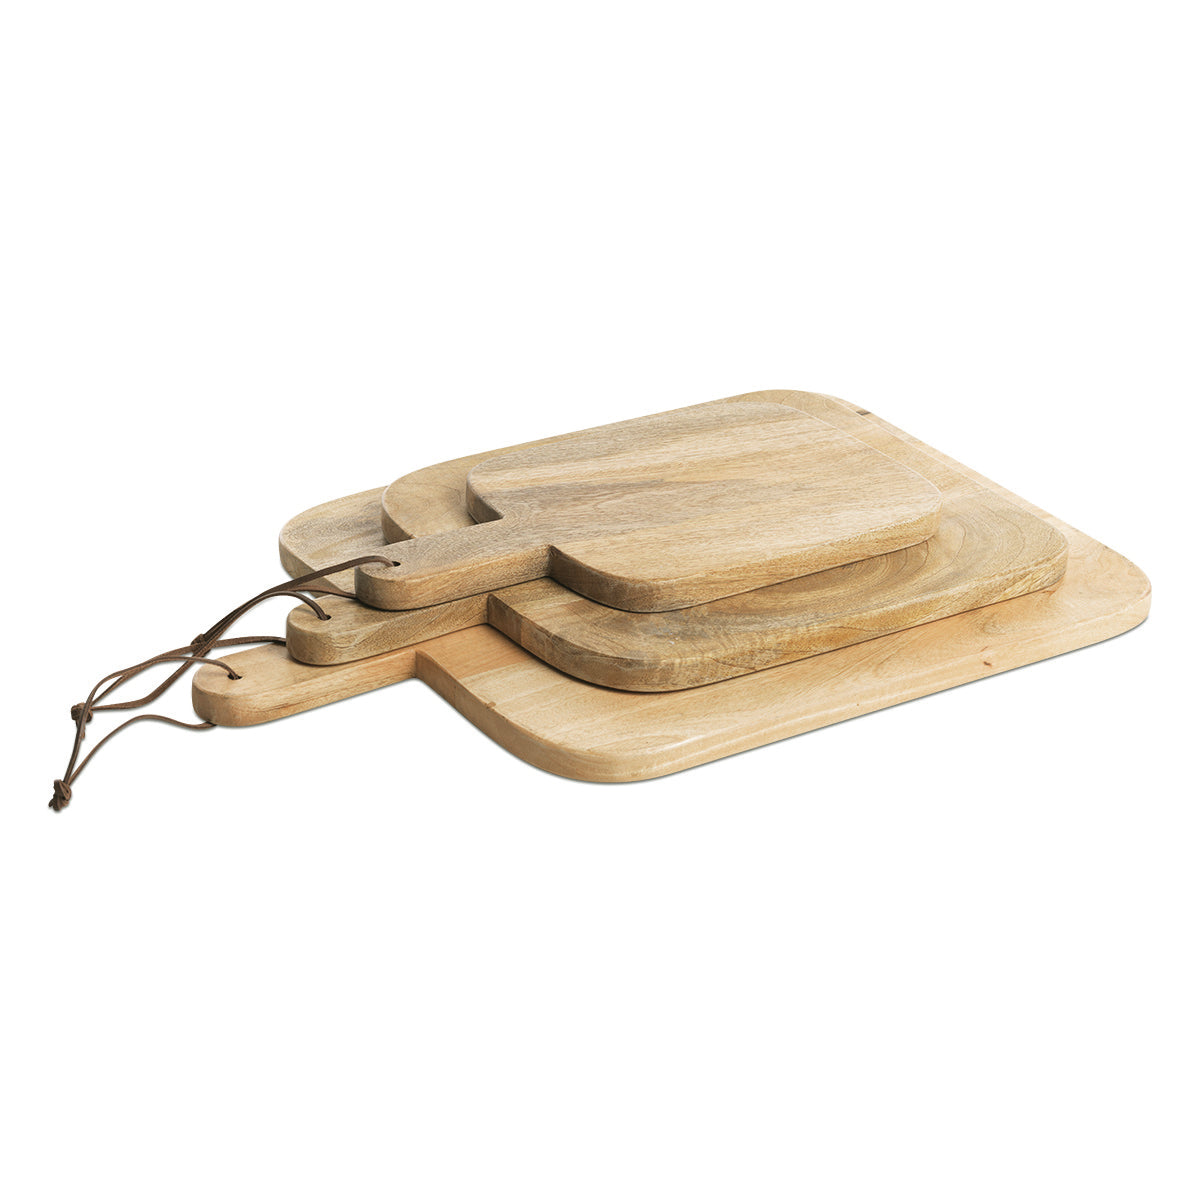 Niju Chopping Board Small